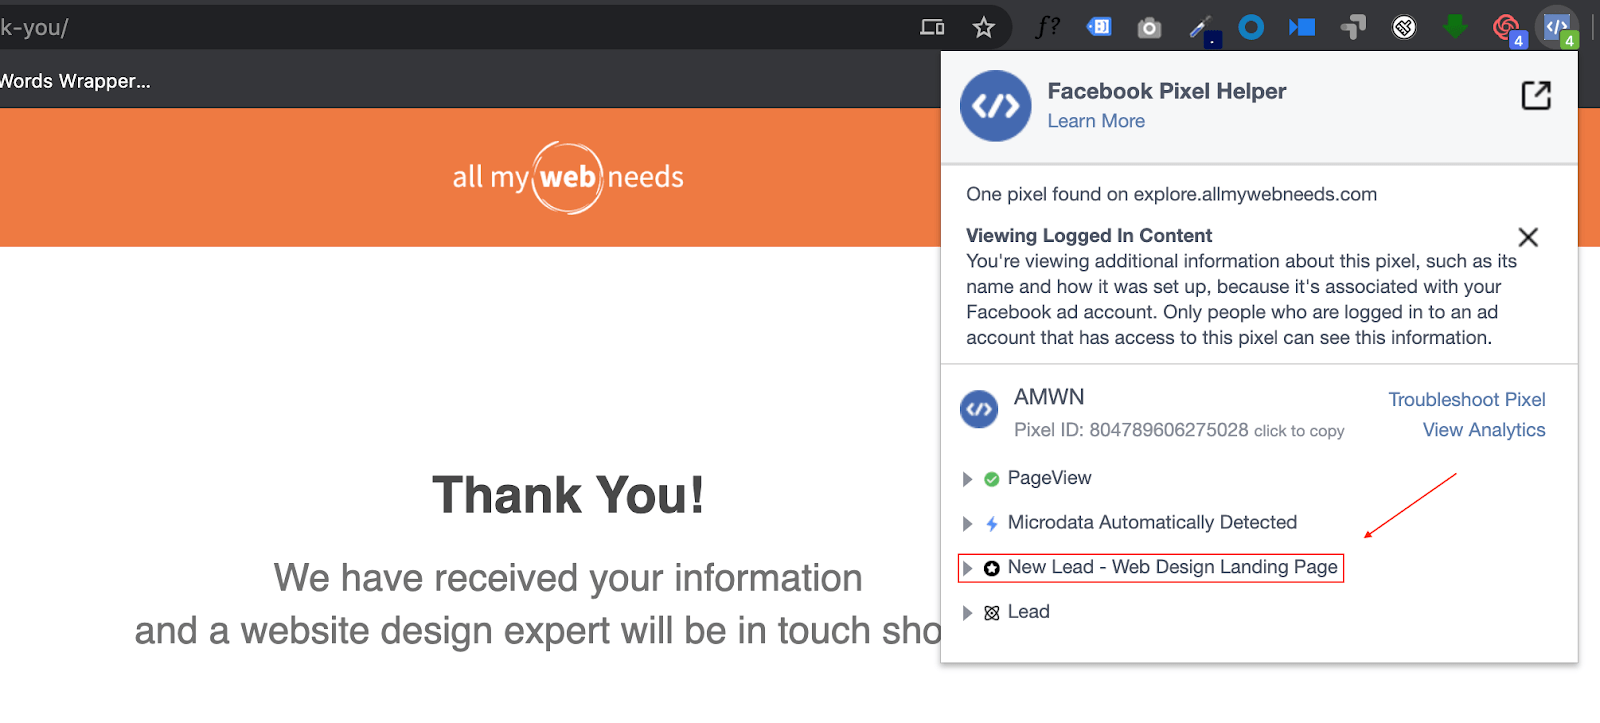 Confirming your conversions in the Facebook Pixel Helper.